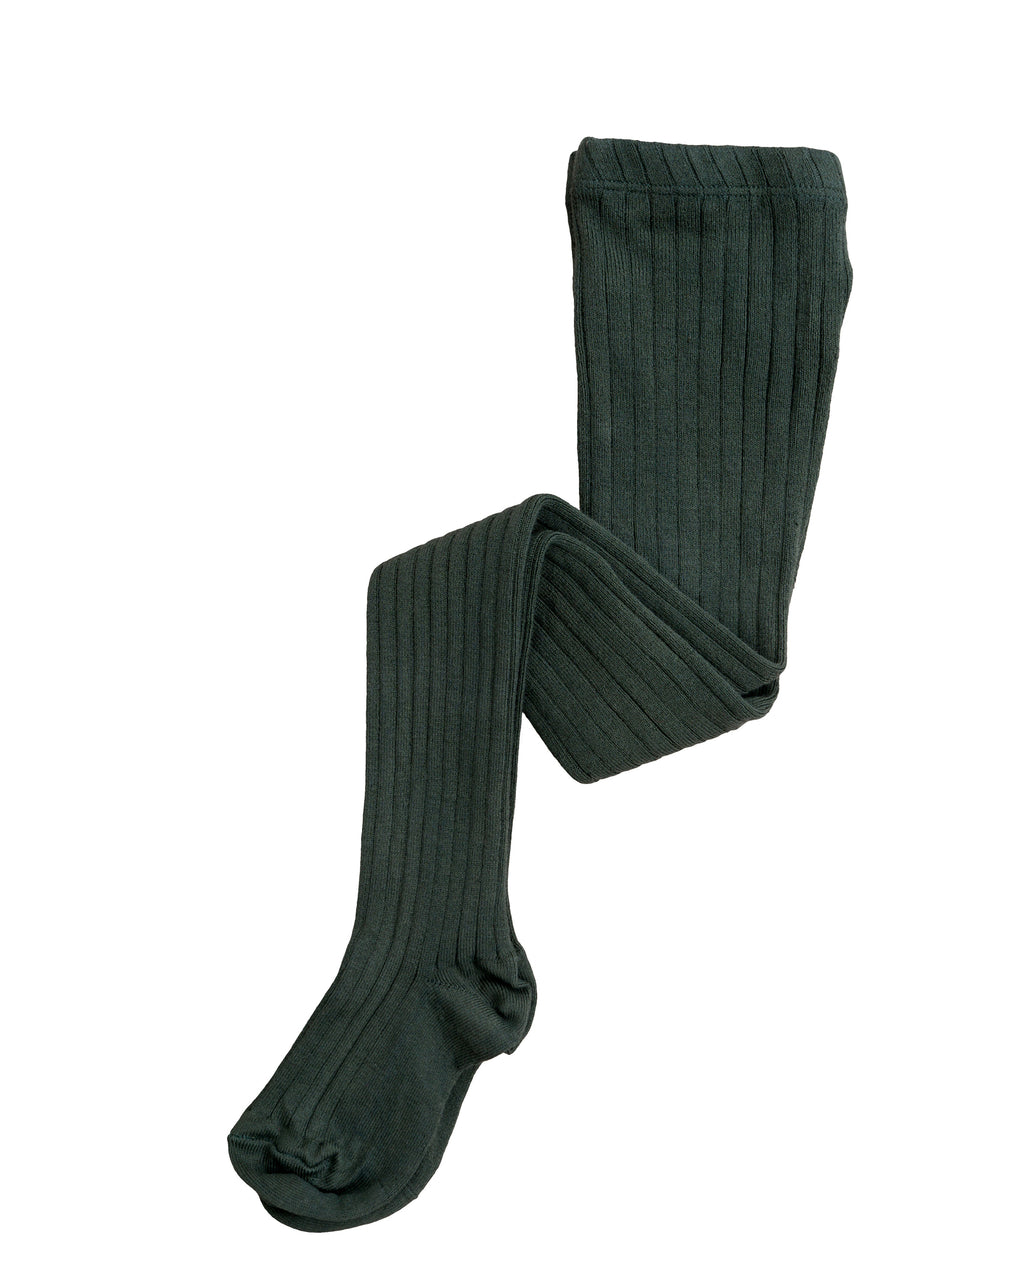 Ribbed Tights - forest green *NEW*